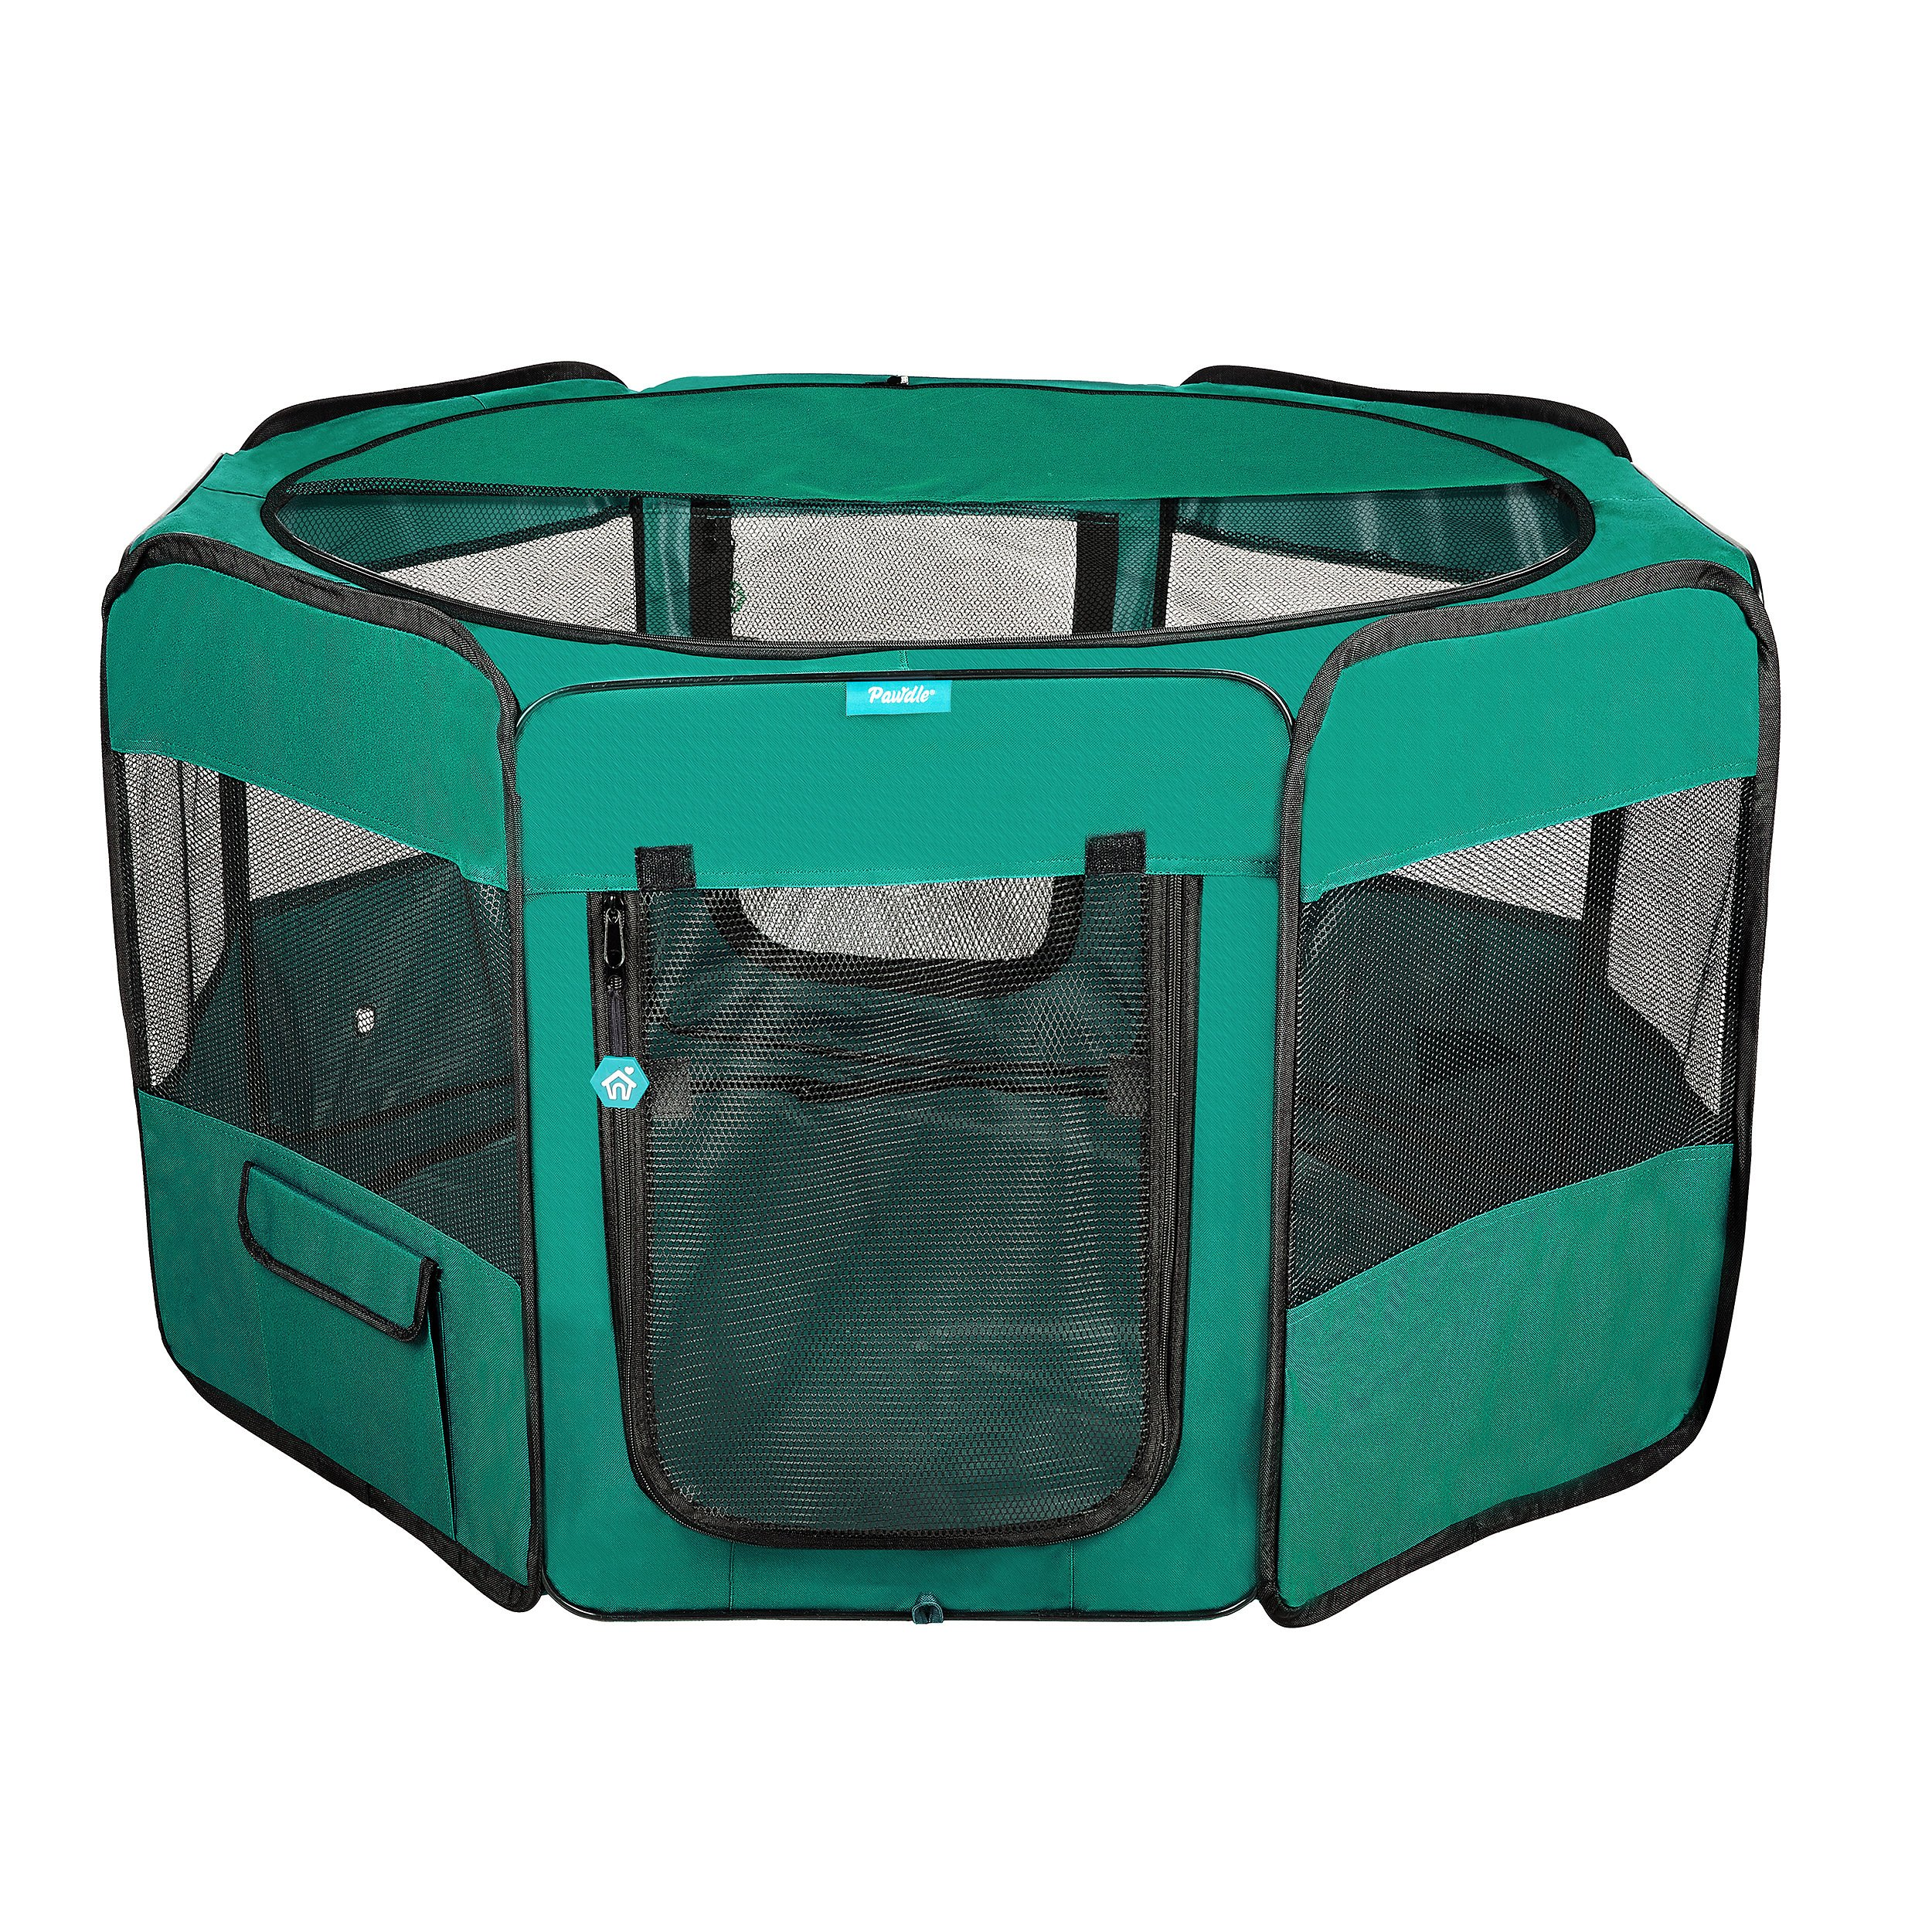 DELUXE PREMIUM Pet Dog Playpen Portable Soft Dog Exercise Pen Kennel with Carry Bag for Dogs, Cats, Kittens, and all Pets (Large, Green)